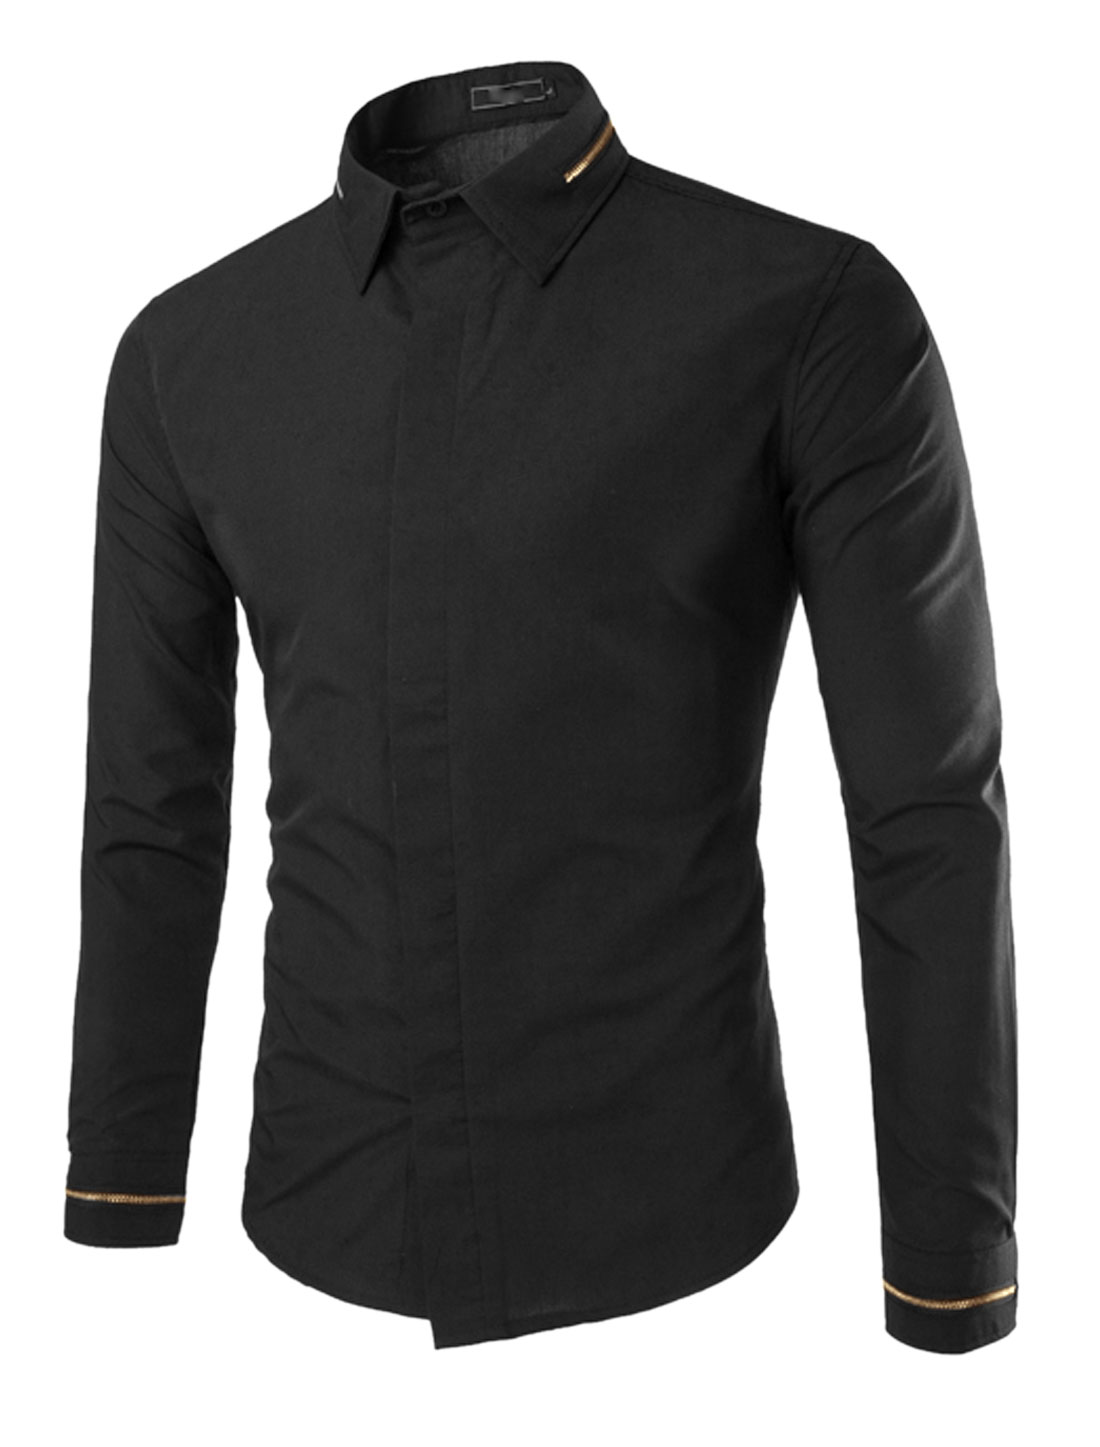 Men Long Sleeve Point Collar Hidden Button Front Shirts Black S